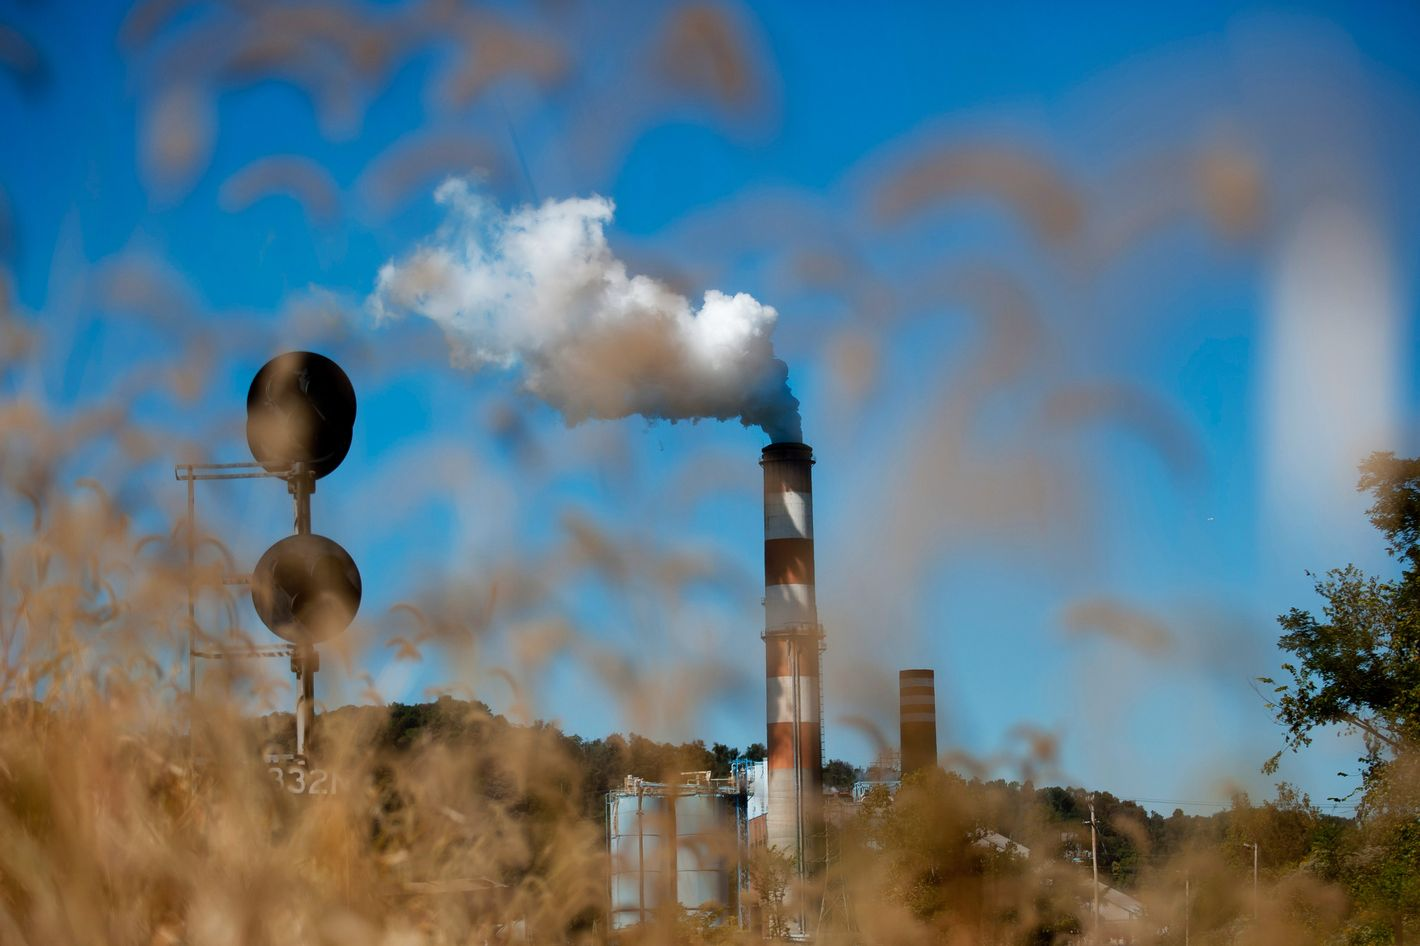 A plume of exhaust extends from the Mitchell Power Station, a coal-fired power plant built along the Monongahela River, 20 miles southwest of Pittsburgh, on September 24, 2013 in New Eagle, Pennsylvania.